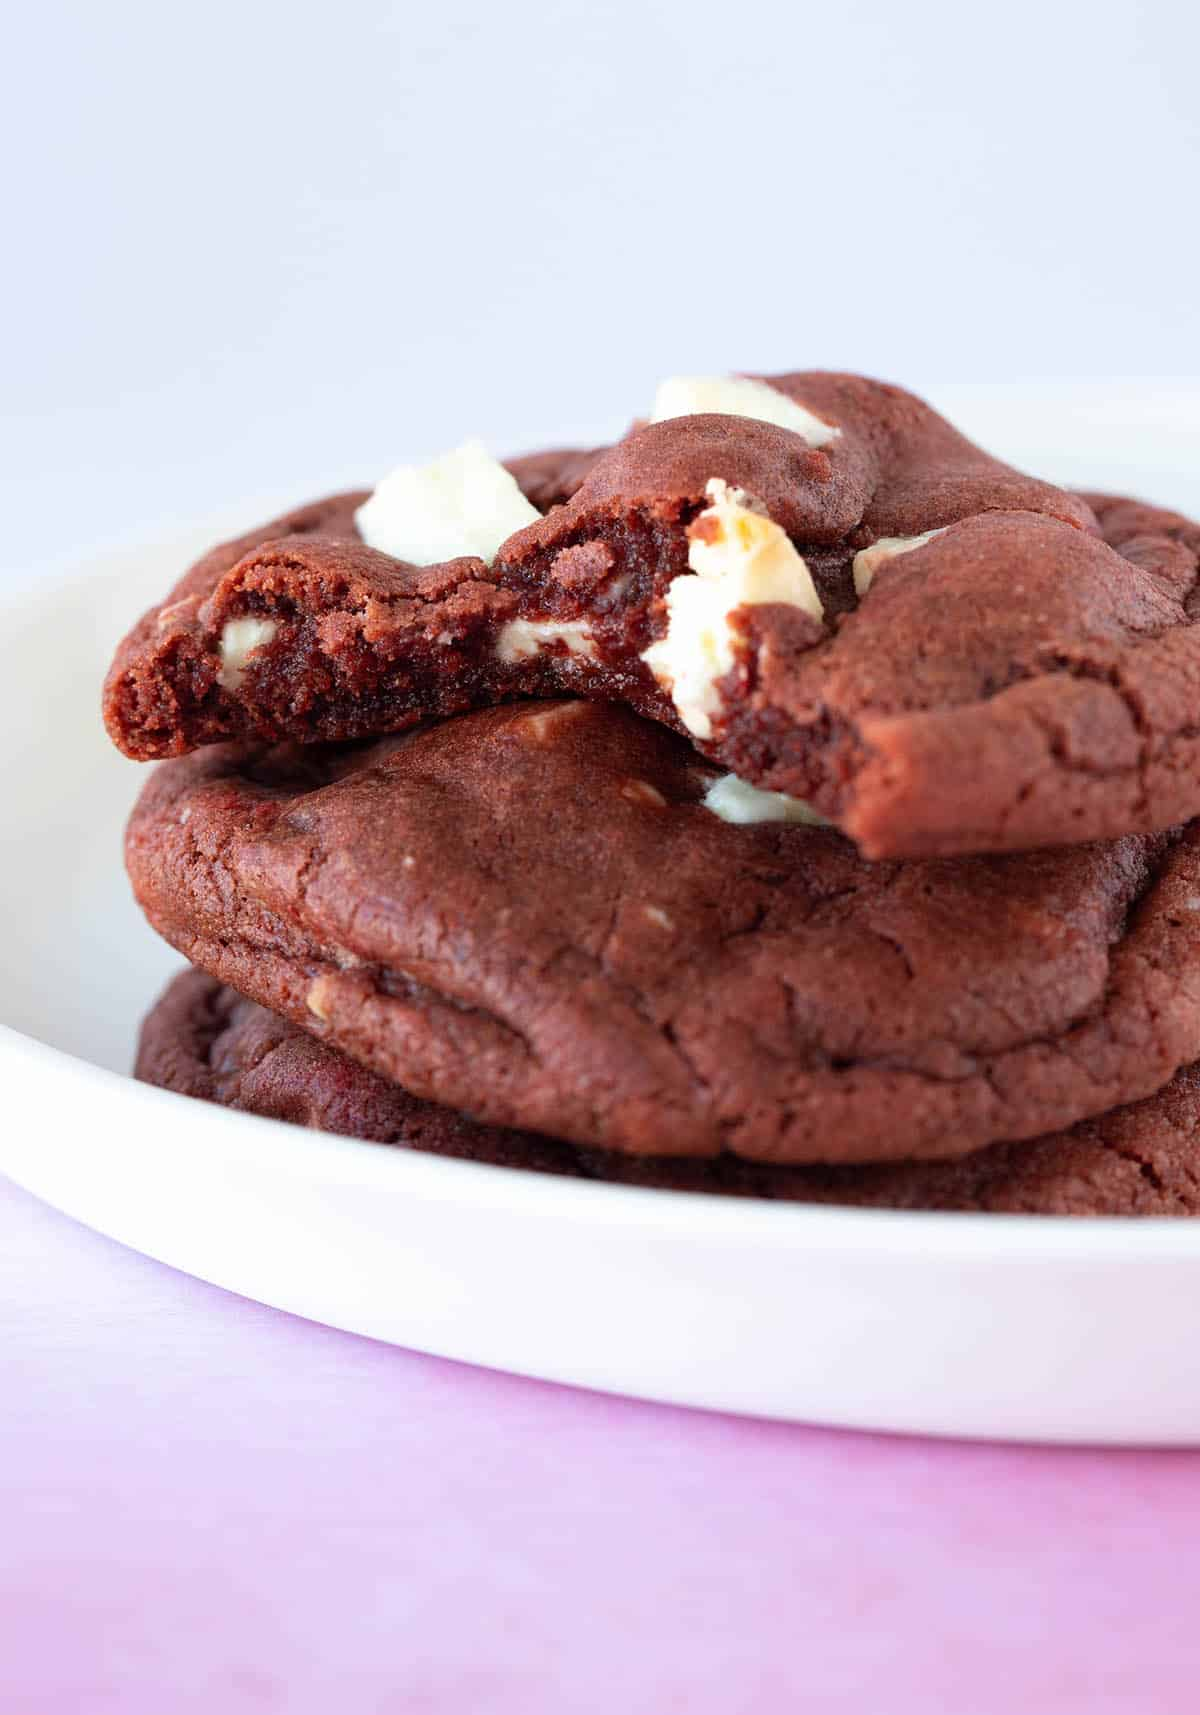 A stack of gooey Red Velvet Cookies with a bite taken out of it.